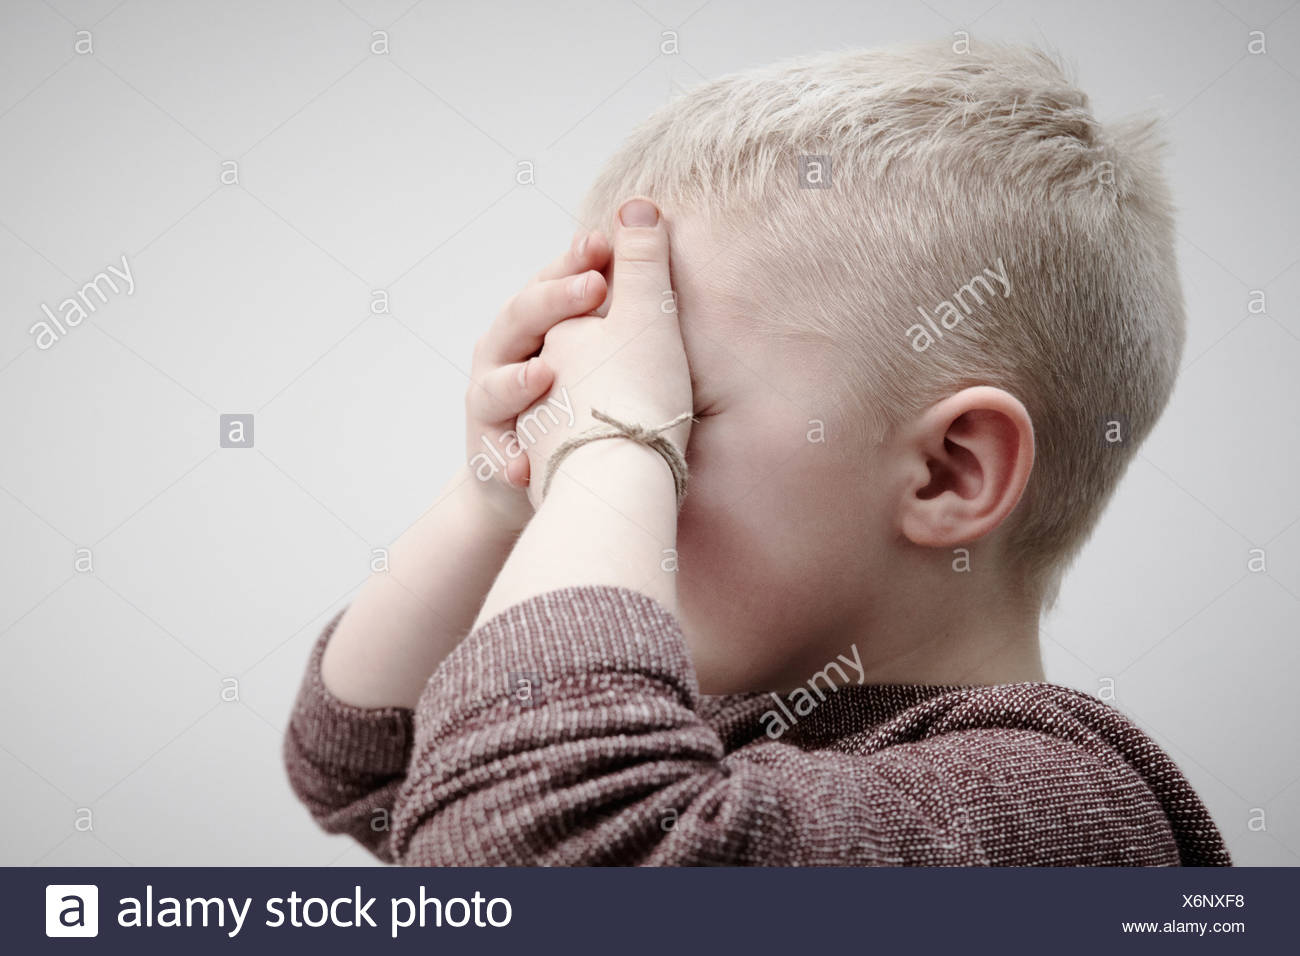 Portrait of boy wearing brown jumper, covering face with hands - Stock Image